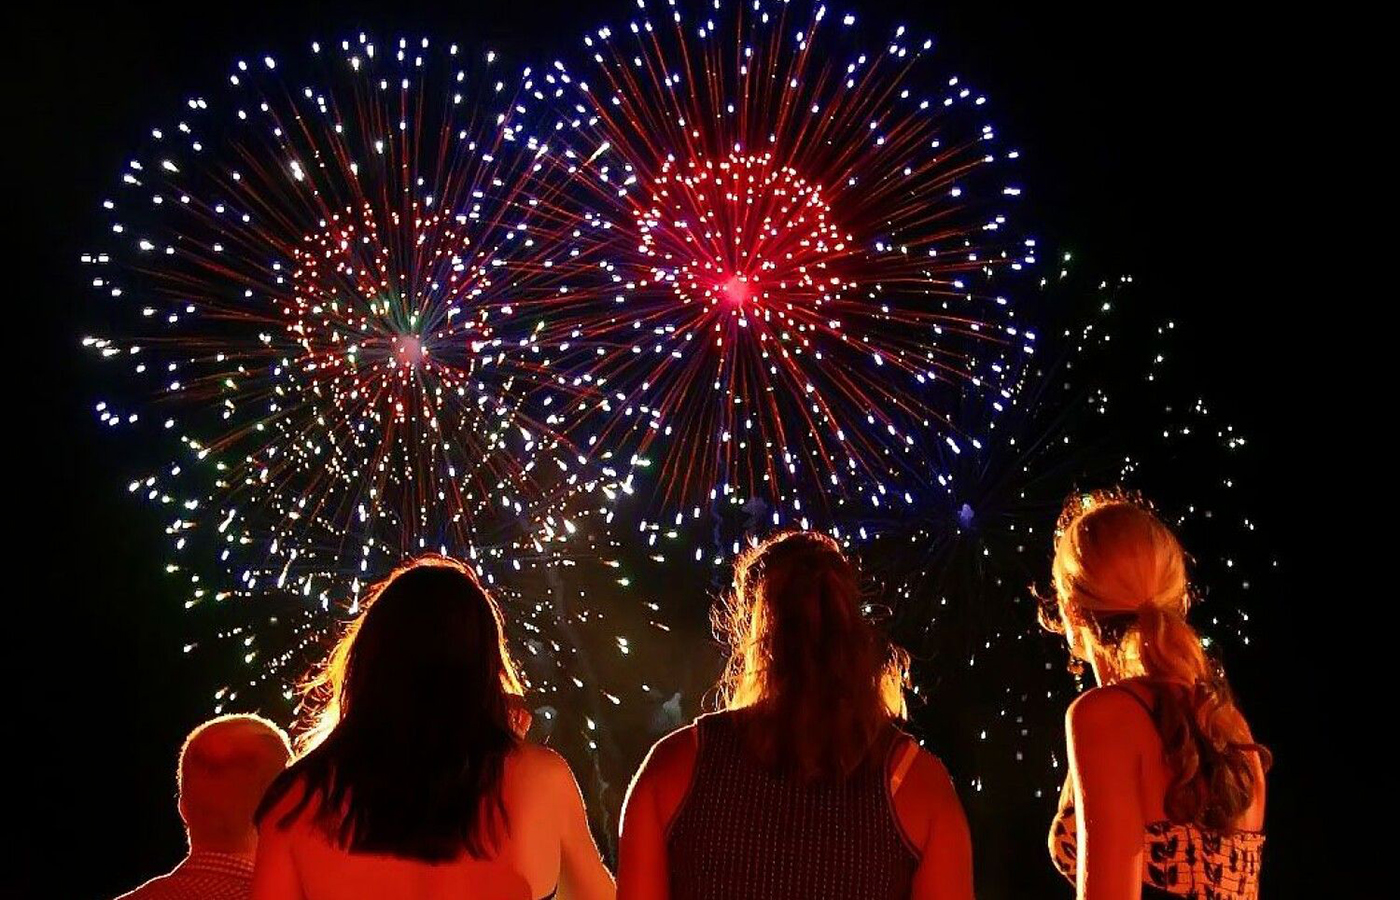 KABOOM! See Fireworks for the Fourth in Middle Tennessee